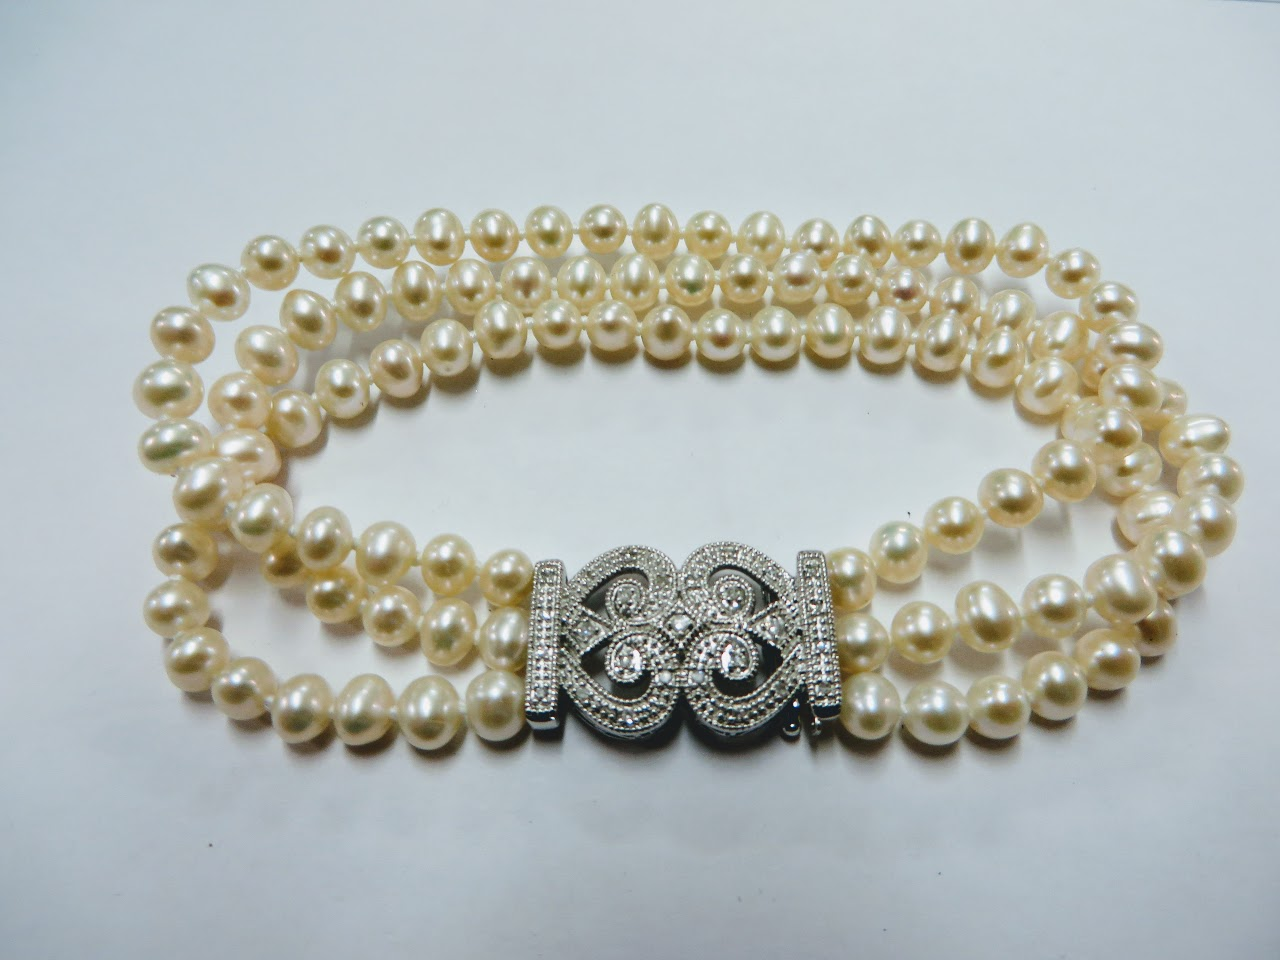 Diamond, Sterling, and Pearl Bracelet